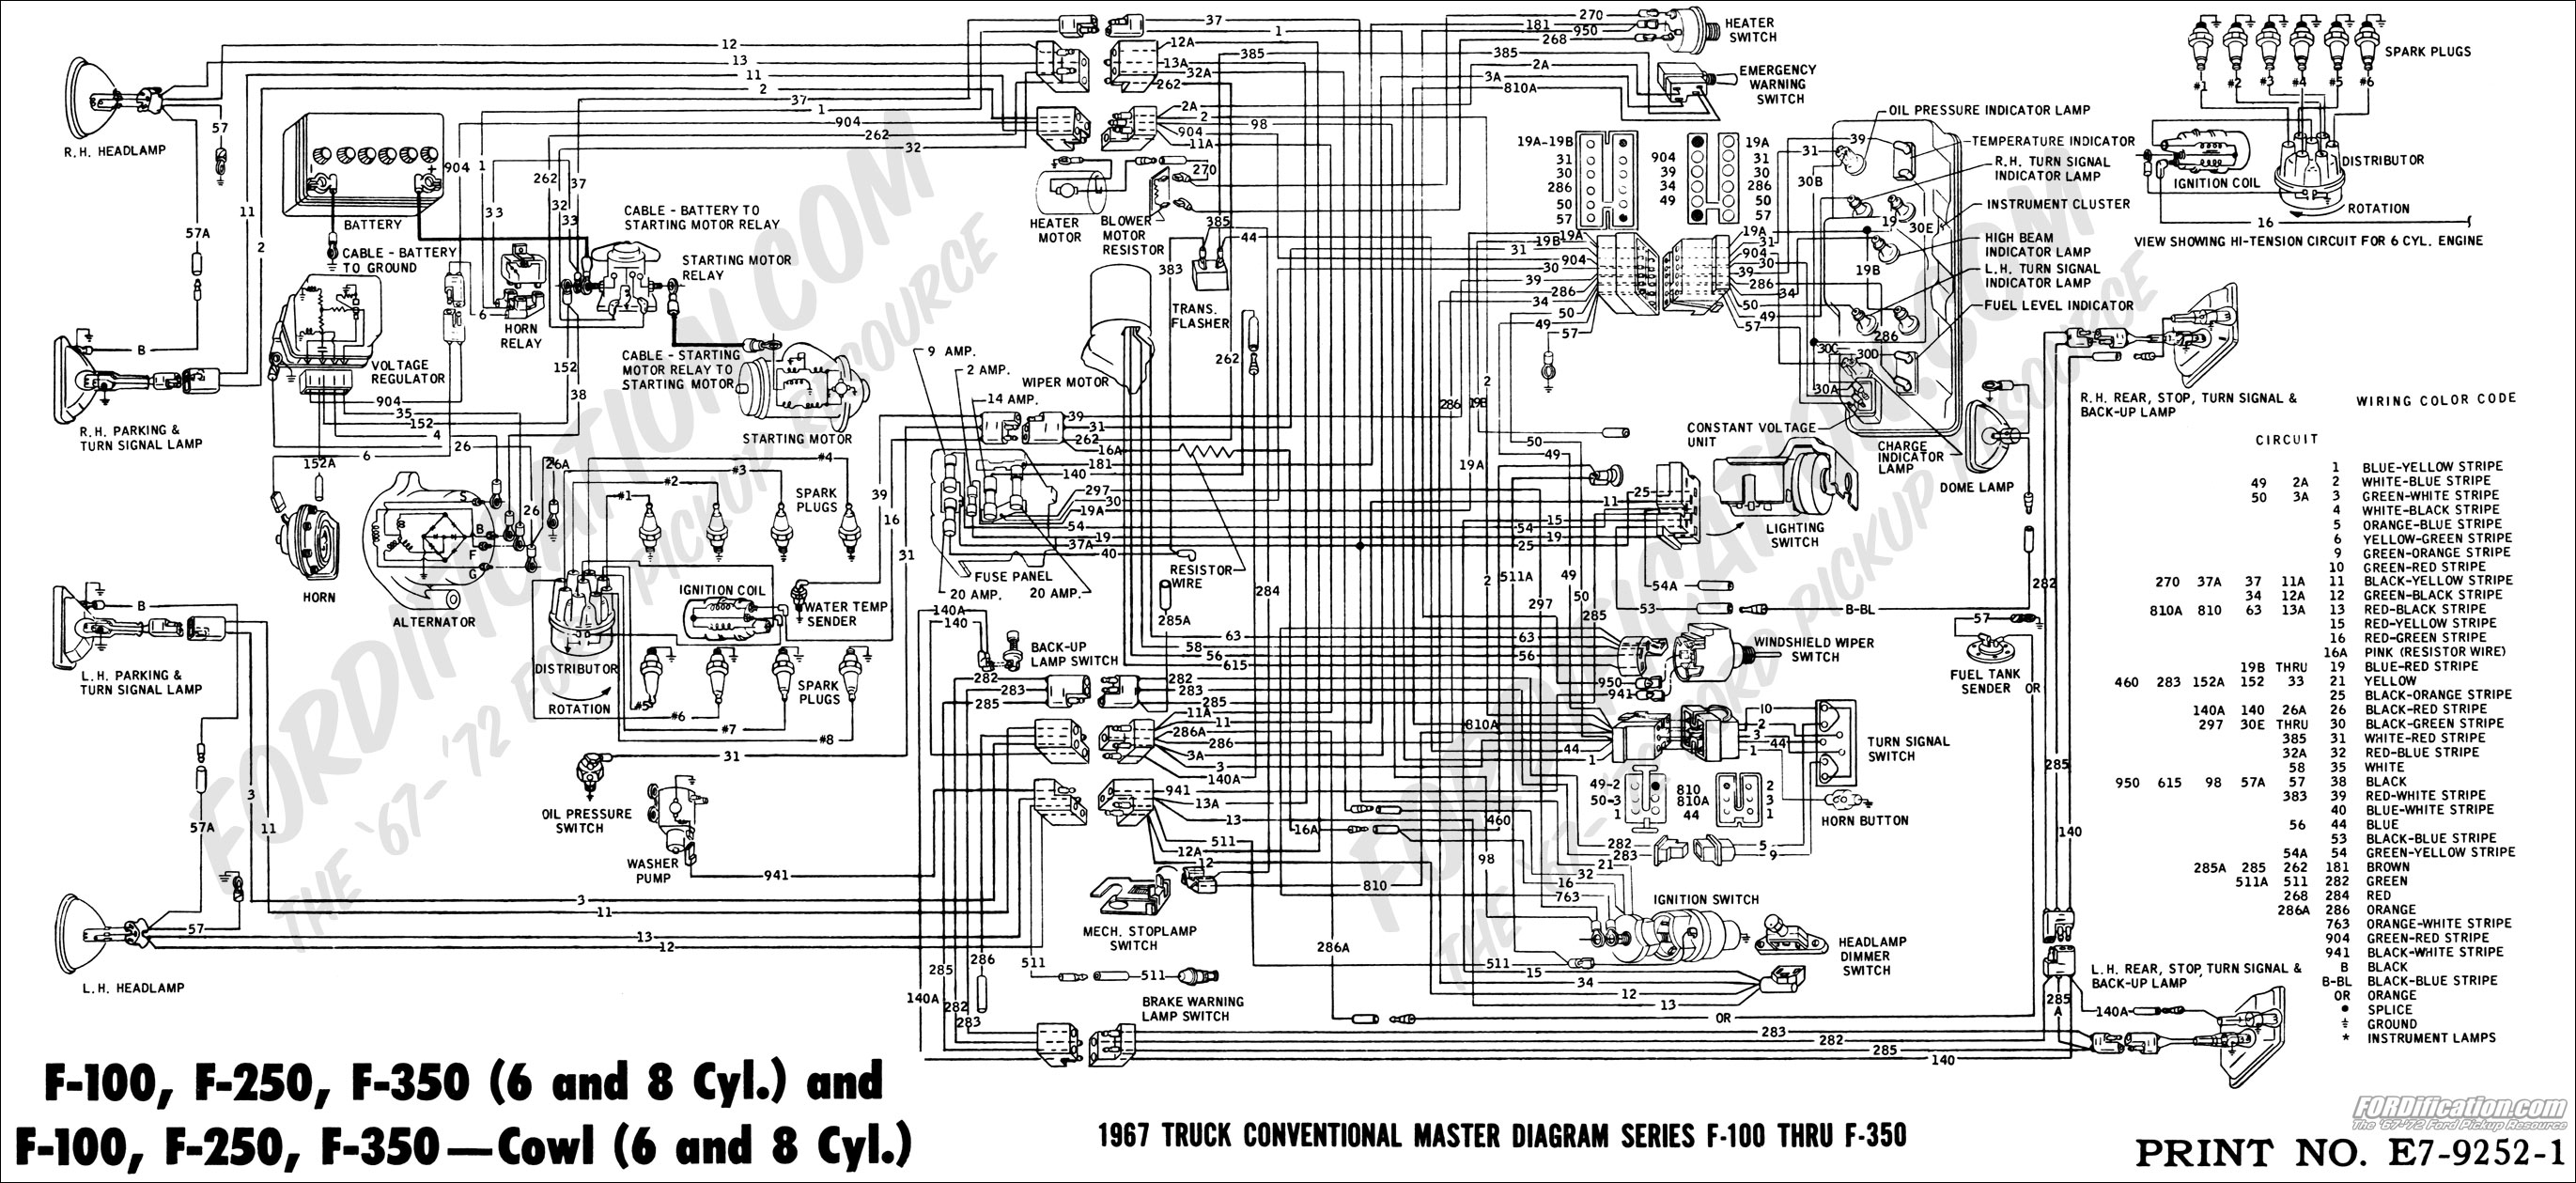 67masterdiagram ford truck technical drawings and schematics section h wiring 1999 ford ranger ignition wiring diagram at alyssarenee.co